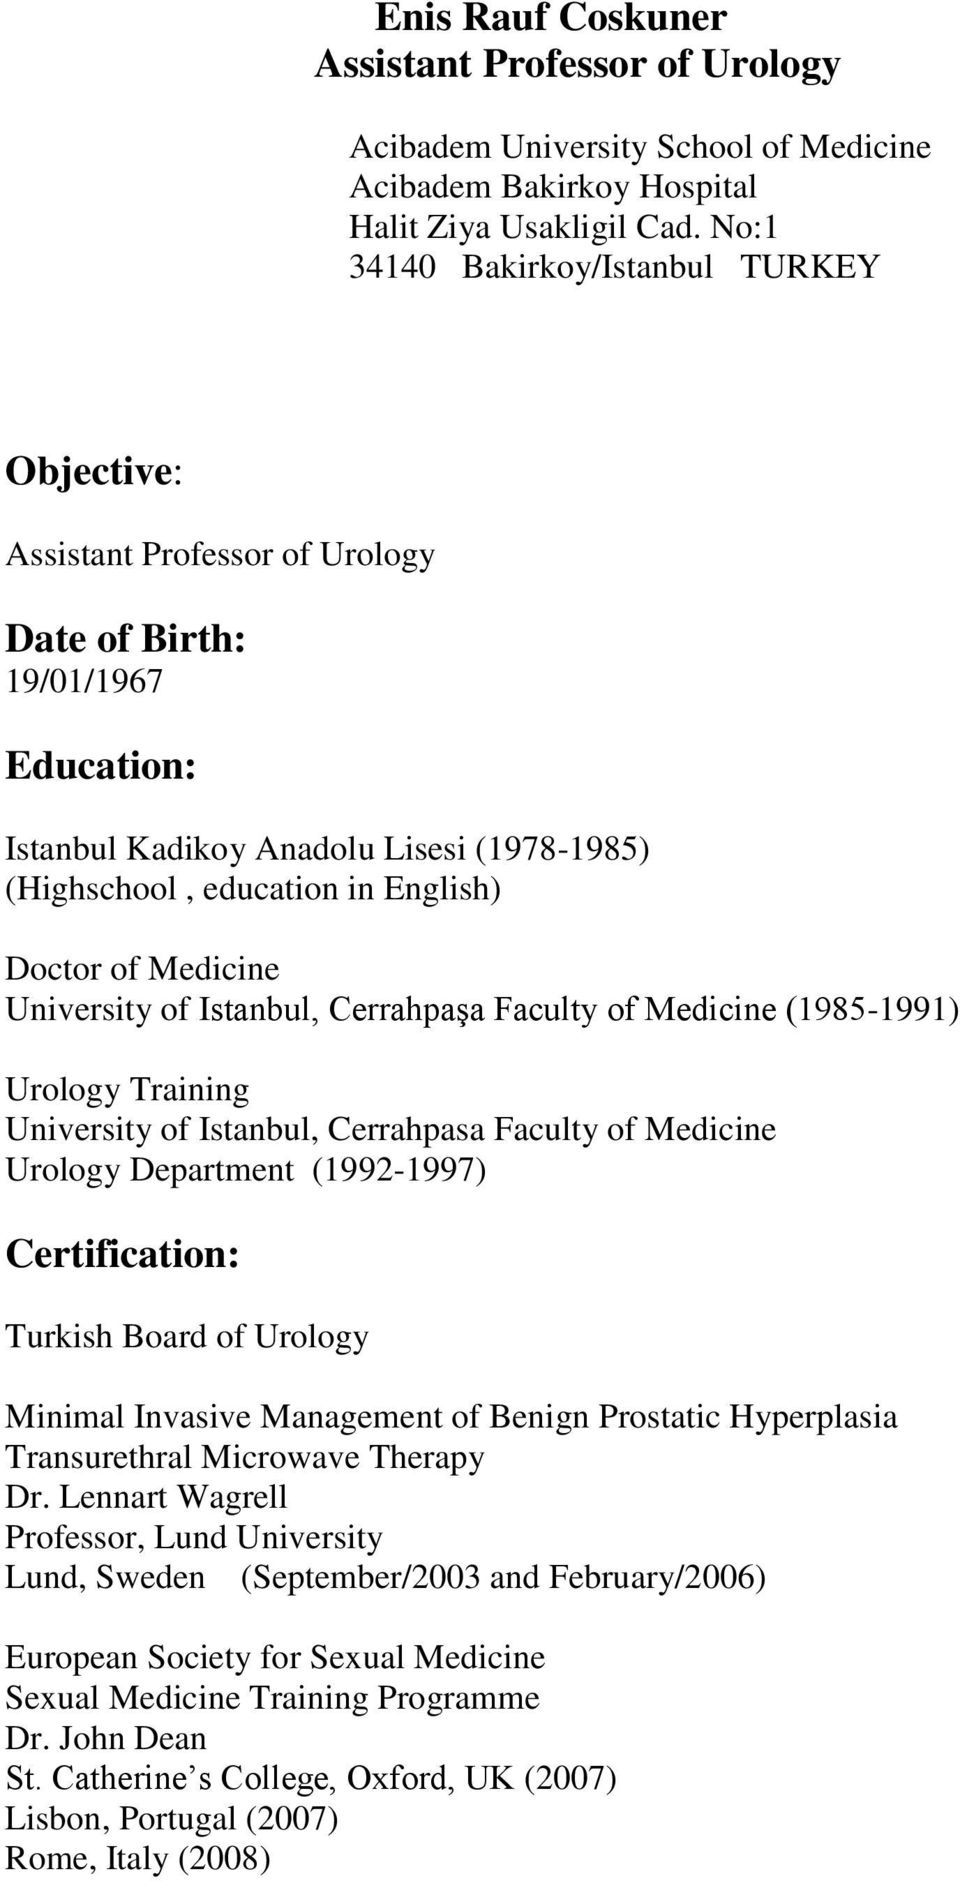 Doctor of Medicine University of Istanbul, Cerrahpaşa Faculty of Medicine (1985-1991) Urology Training University of Istanbul, Cerrahpasa Faculty of Medicine Urology Department (1992-1997)